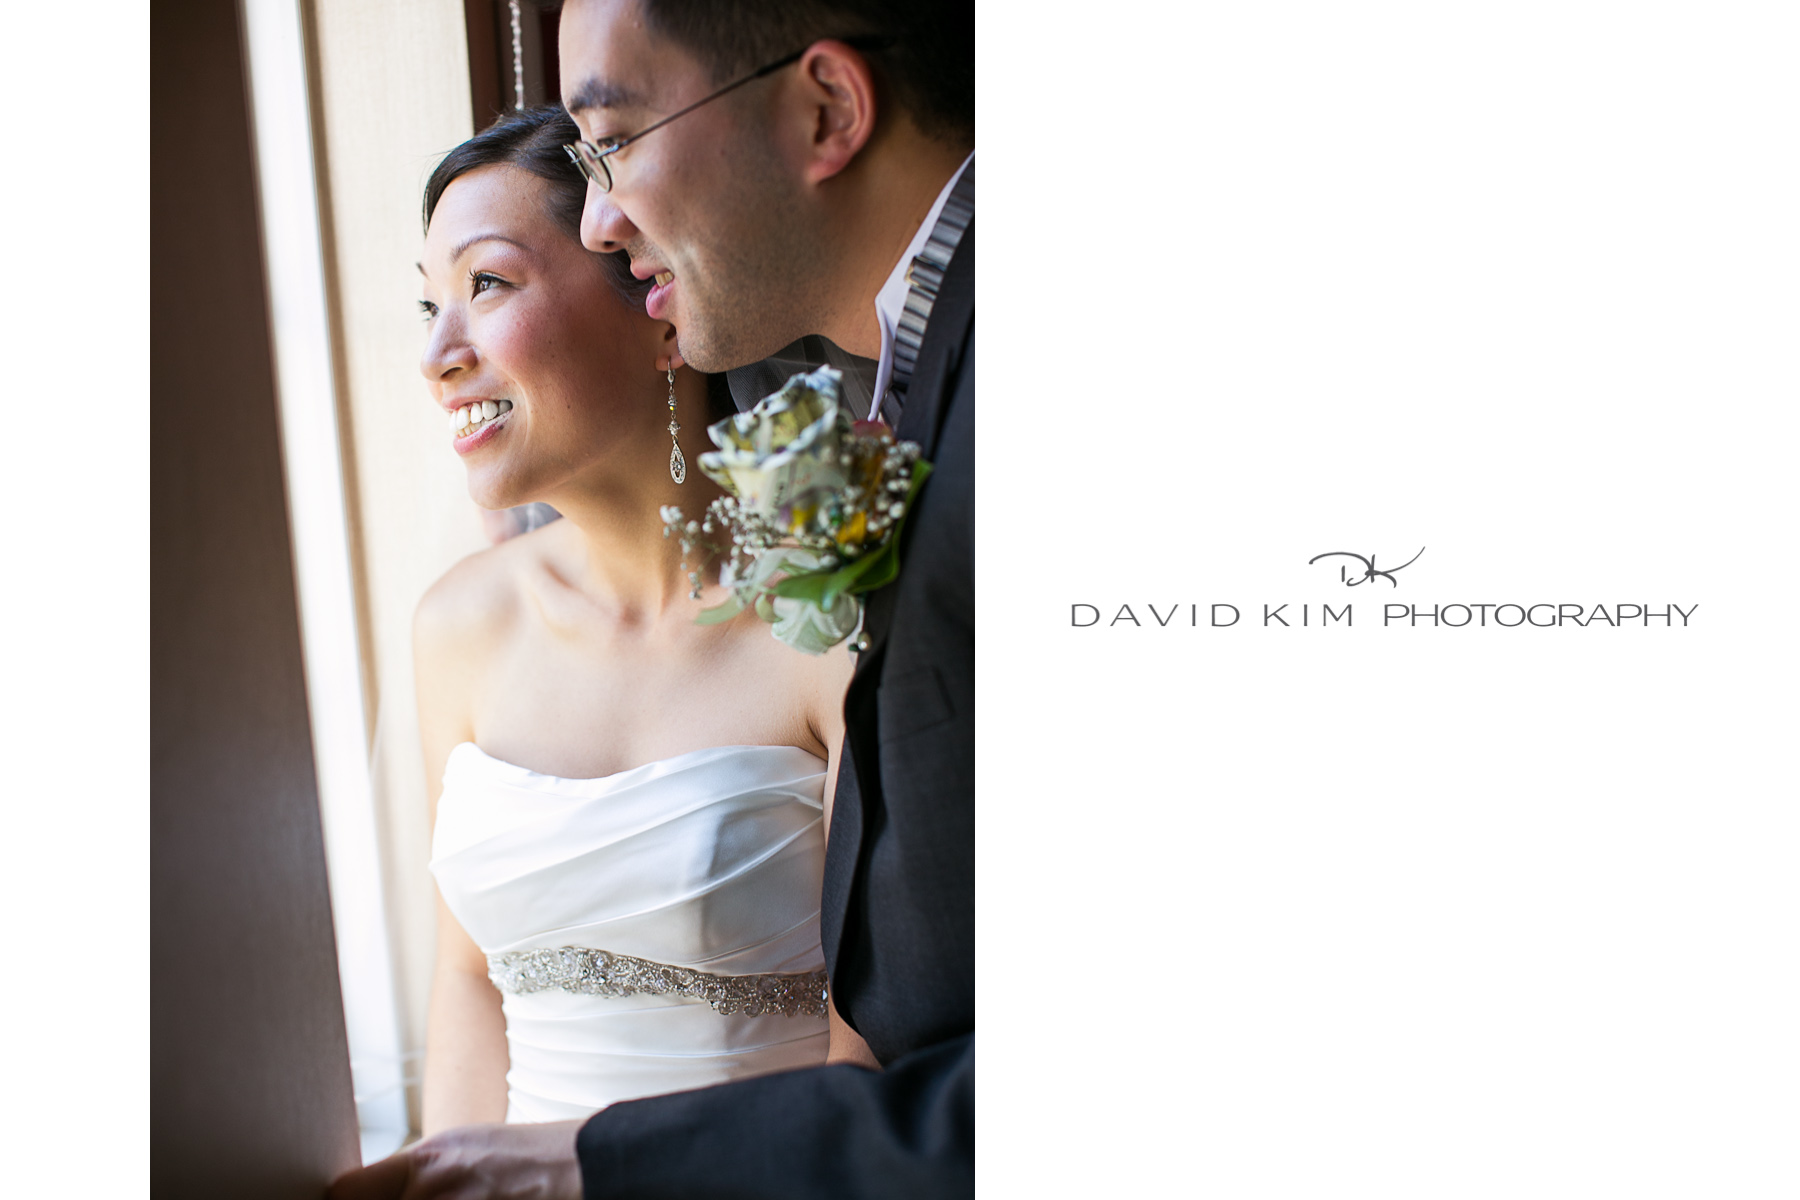 Joanna-Dave-011-11-wedding-photography-san-francisco.jpg